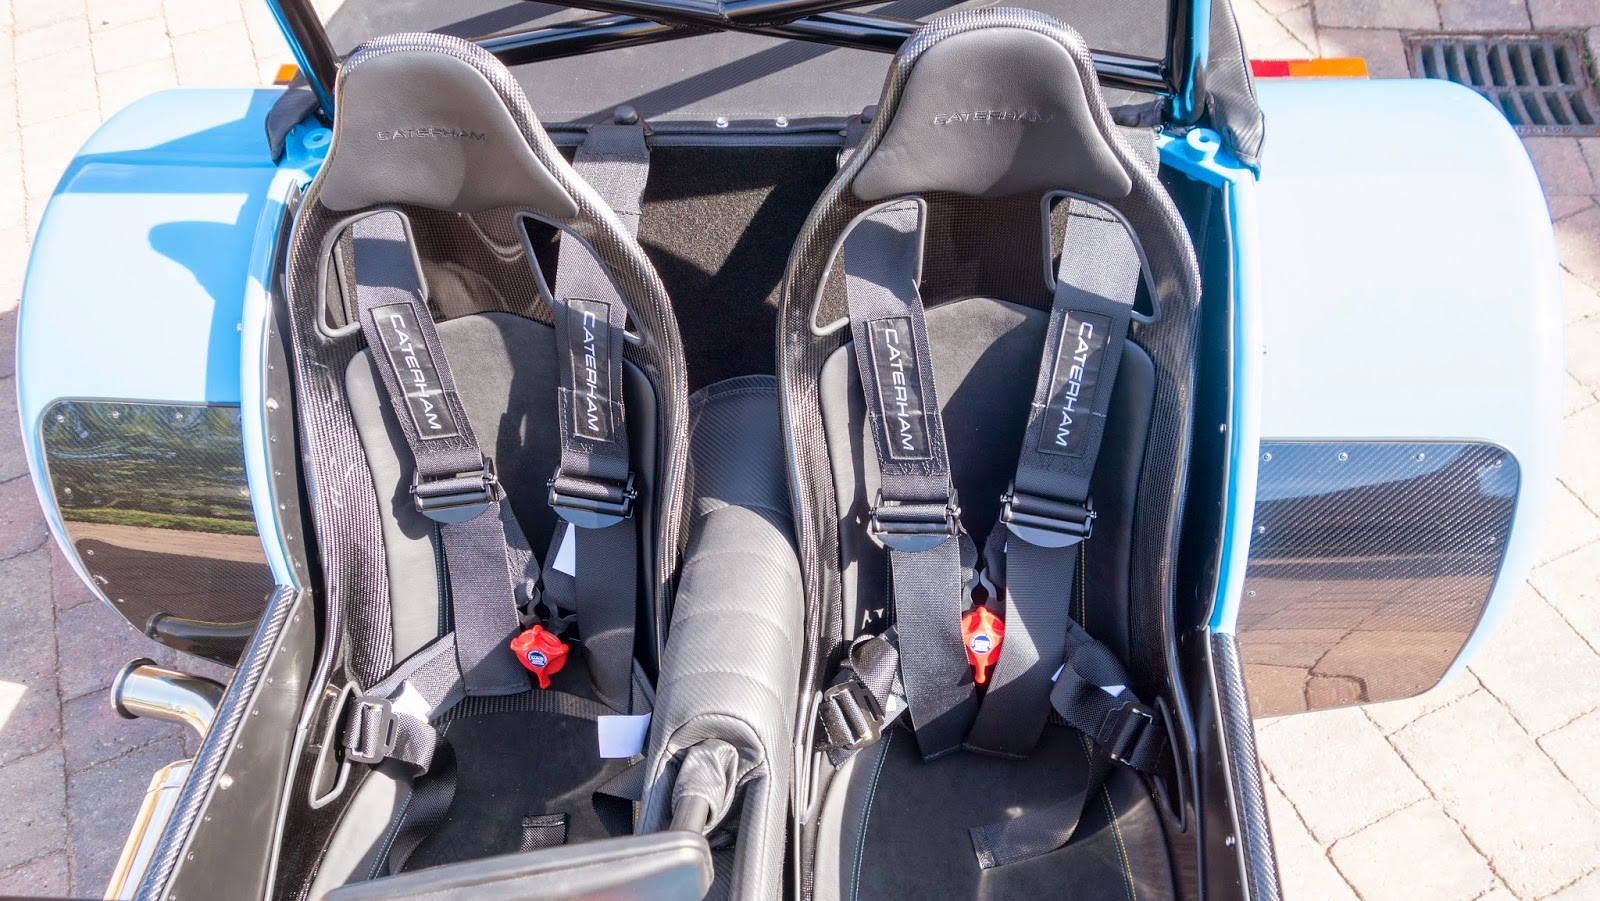 The 620R seats and harnesses - they really look amazing.